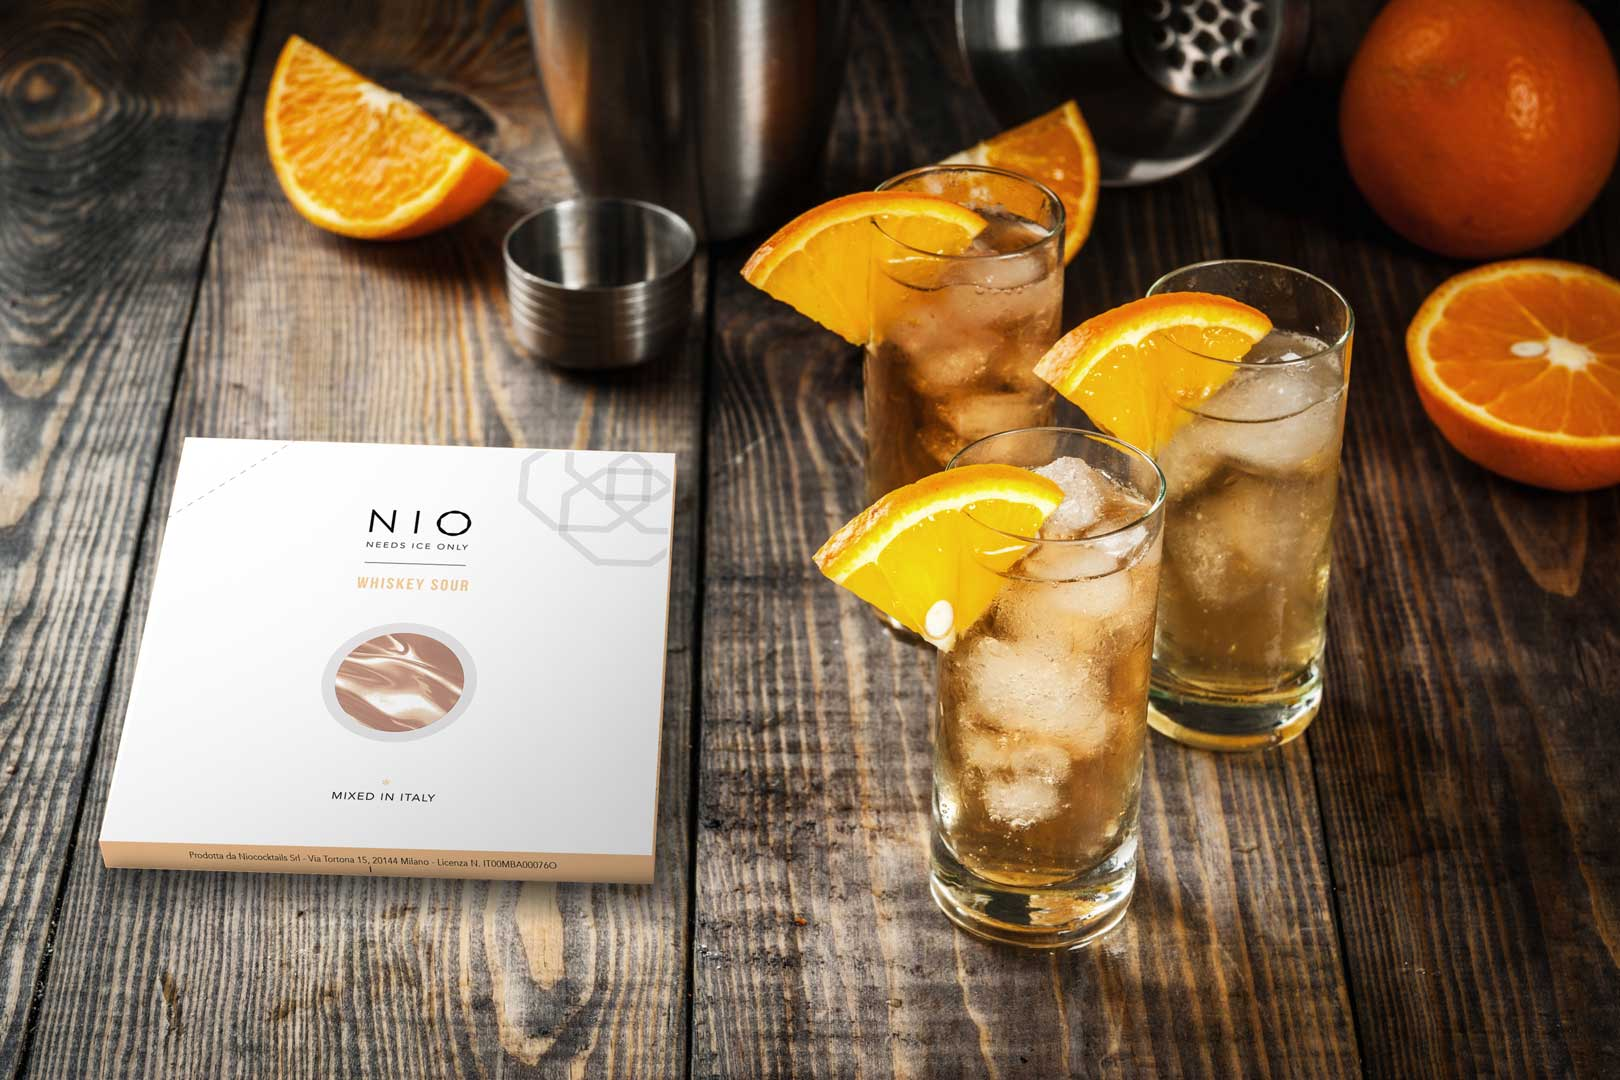 Nio Needs Ice Only - Milano